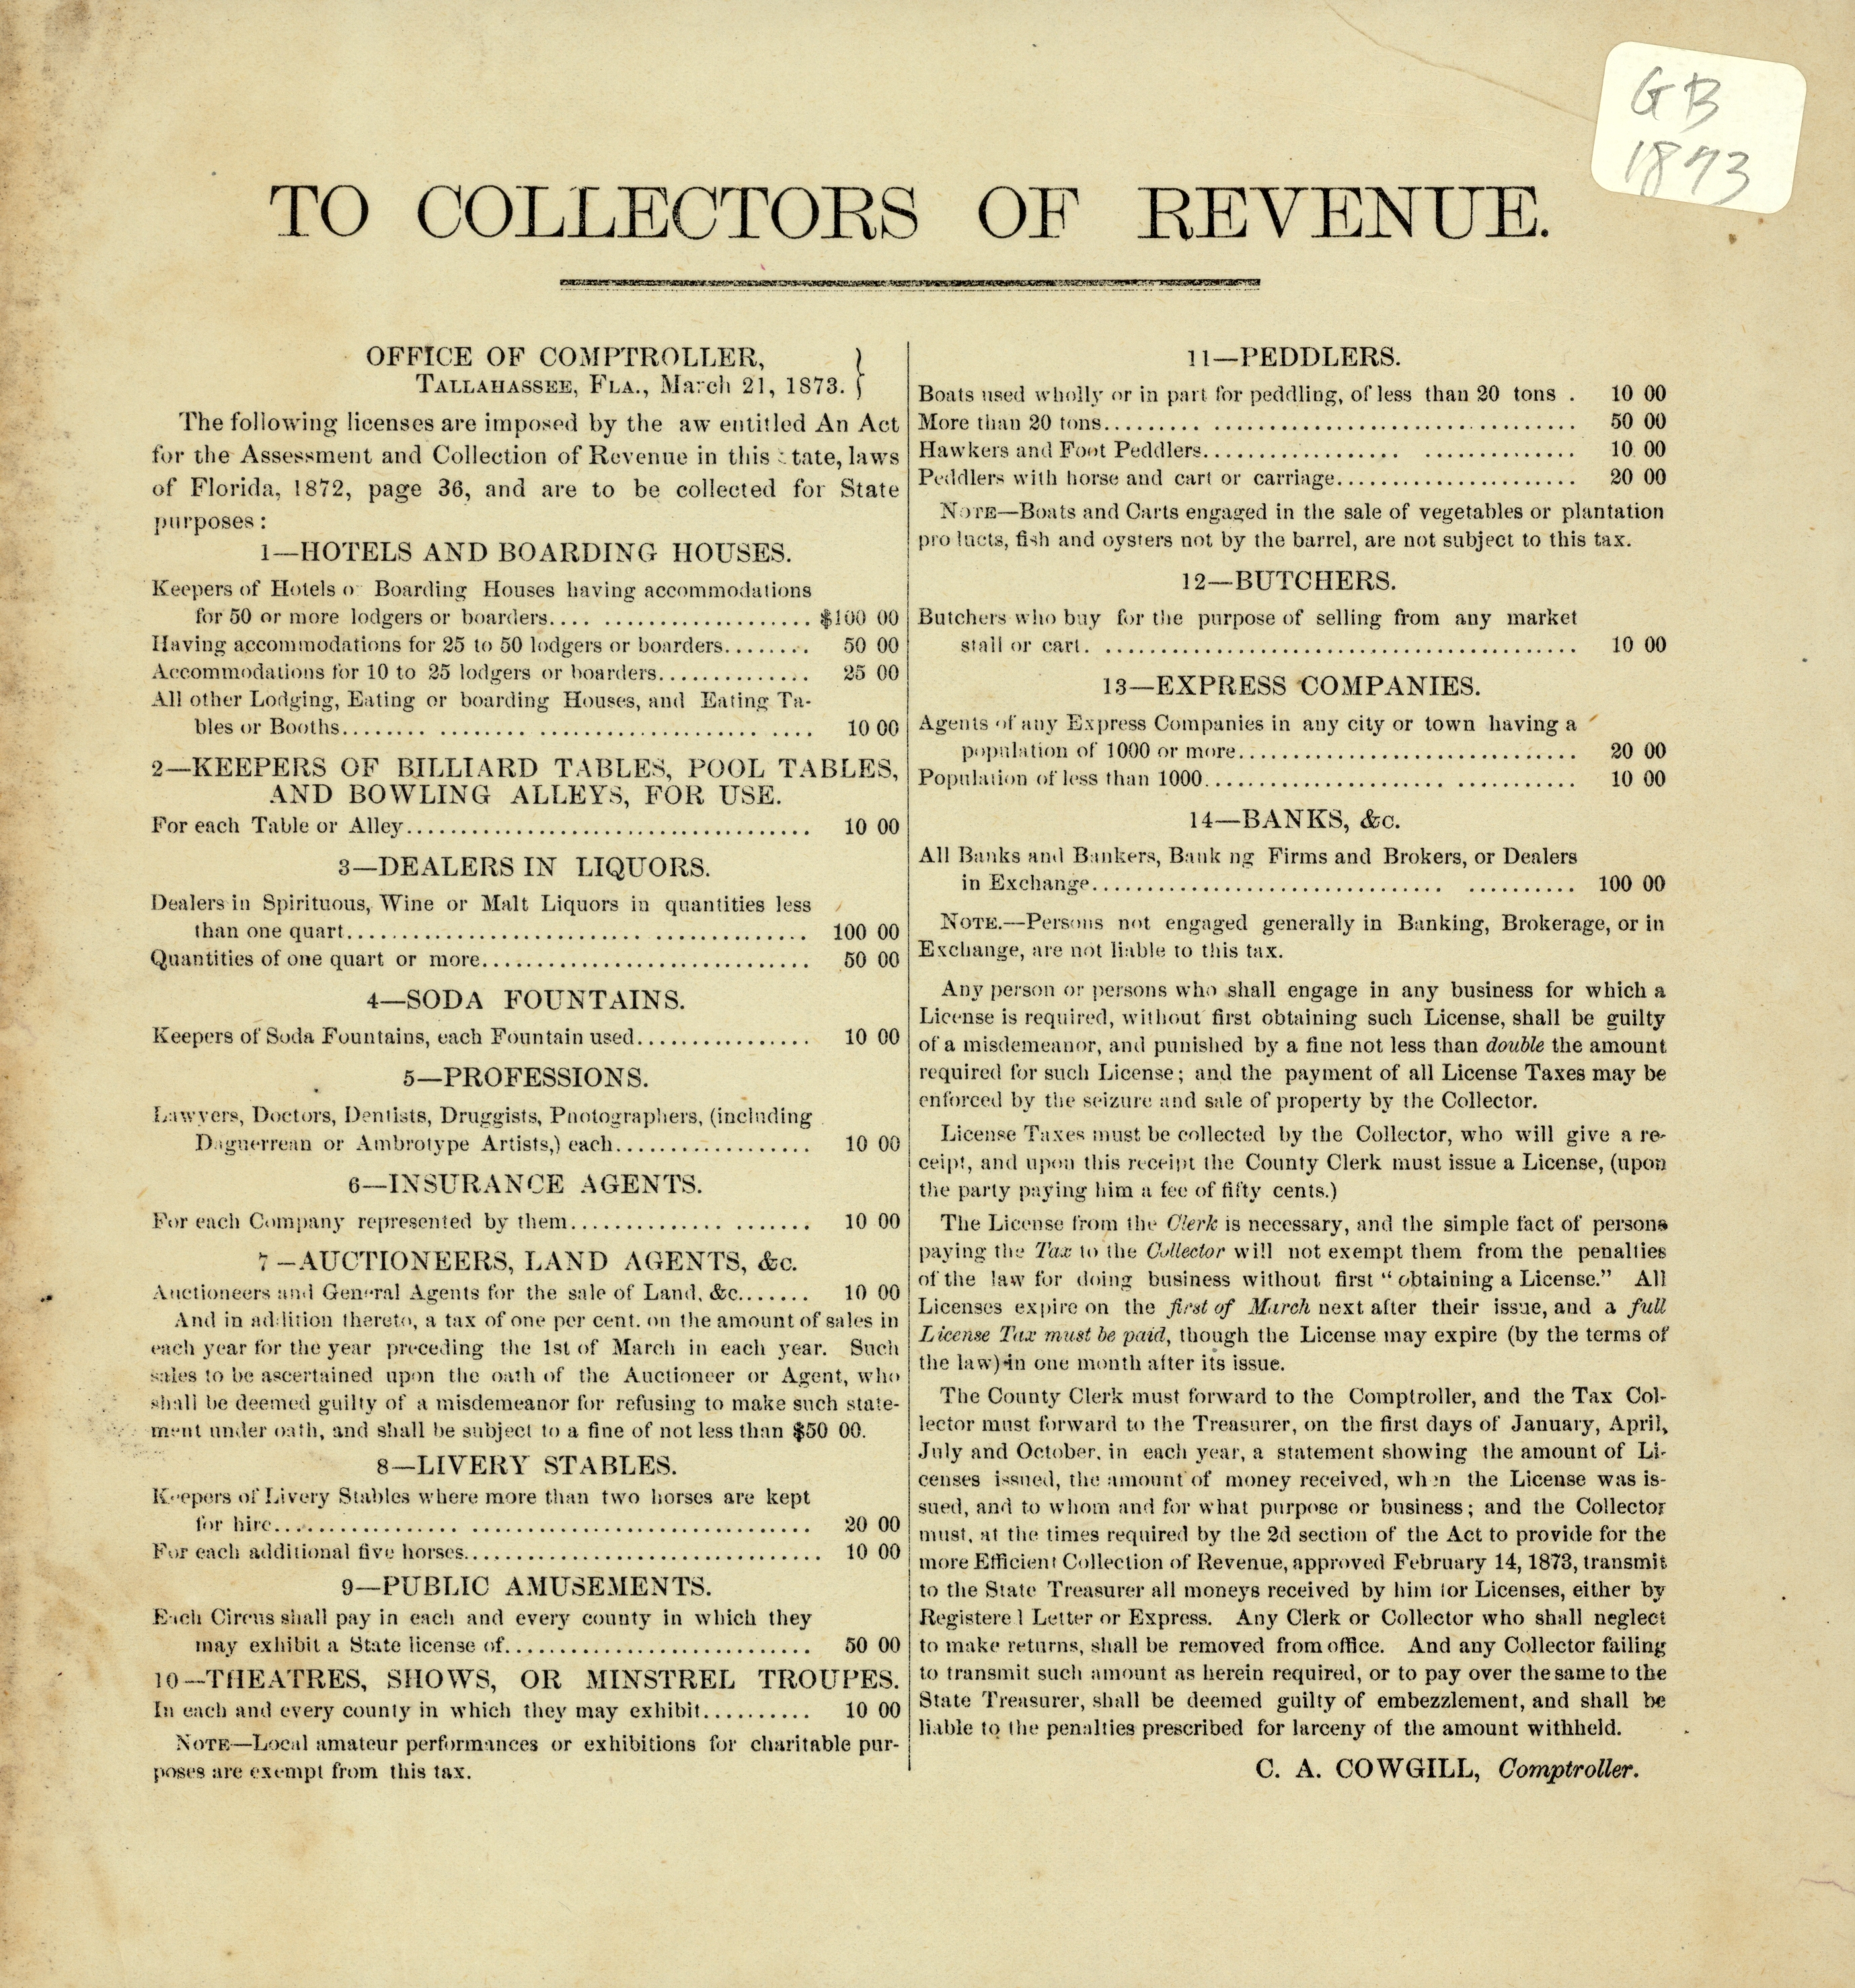 To the collectors of revenue. Office of Comptroller, Tallahassee, Fla., March 21, 1873.